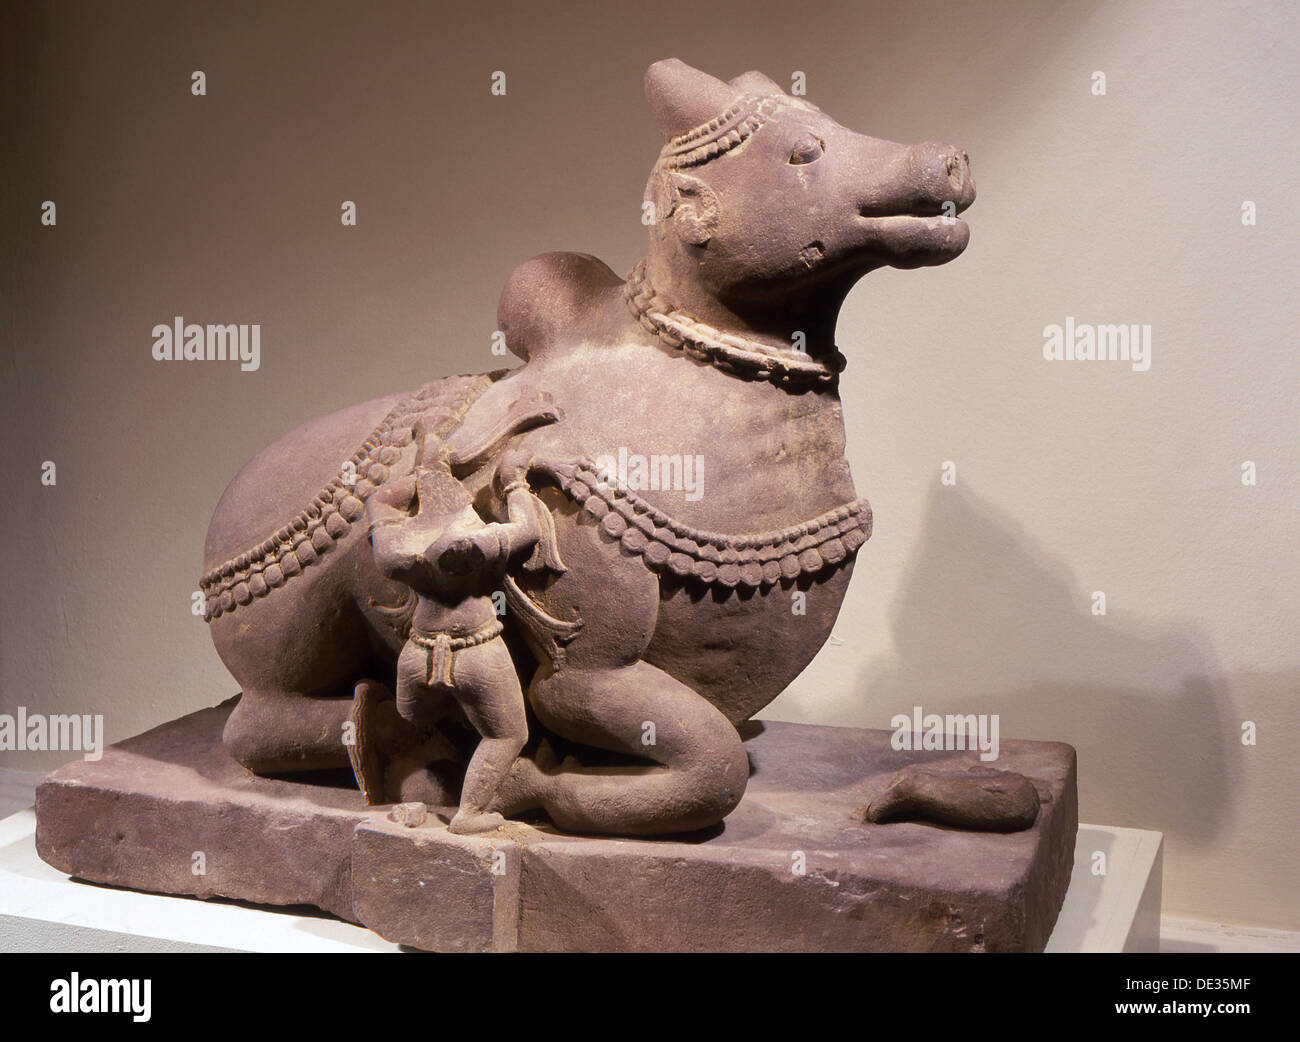 Free standing statue of Nandi, the bull mount of Shiva, with attendant tying a garland around his neck. - Stock Image